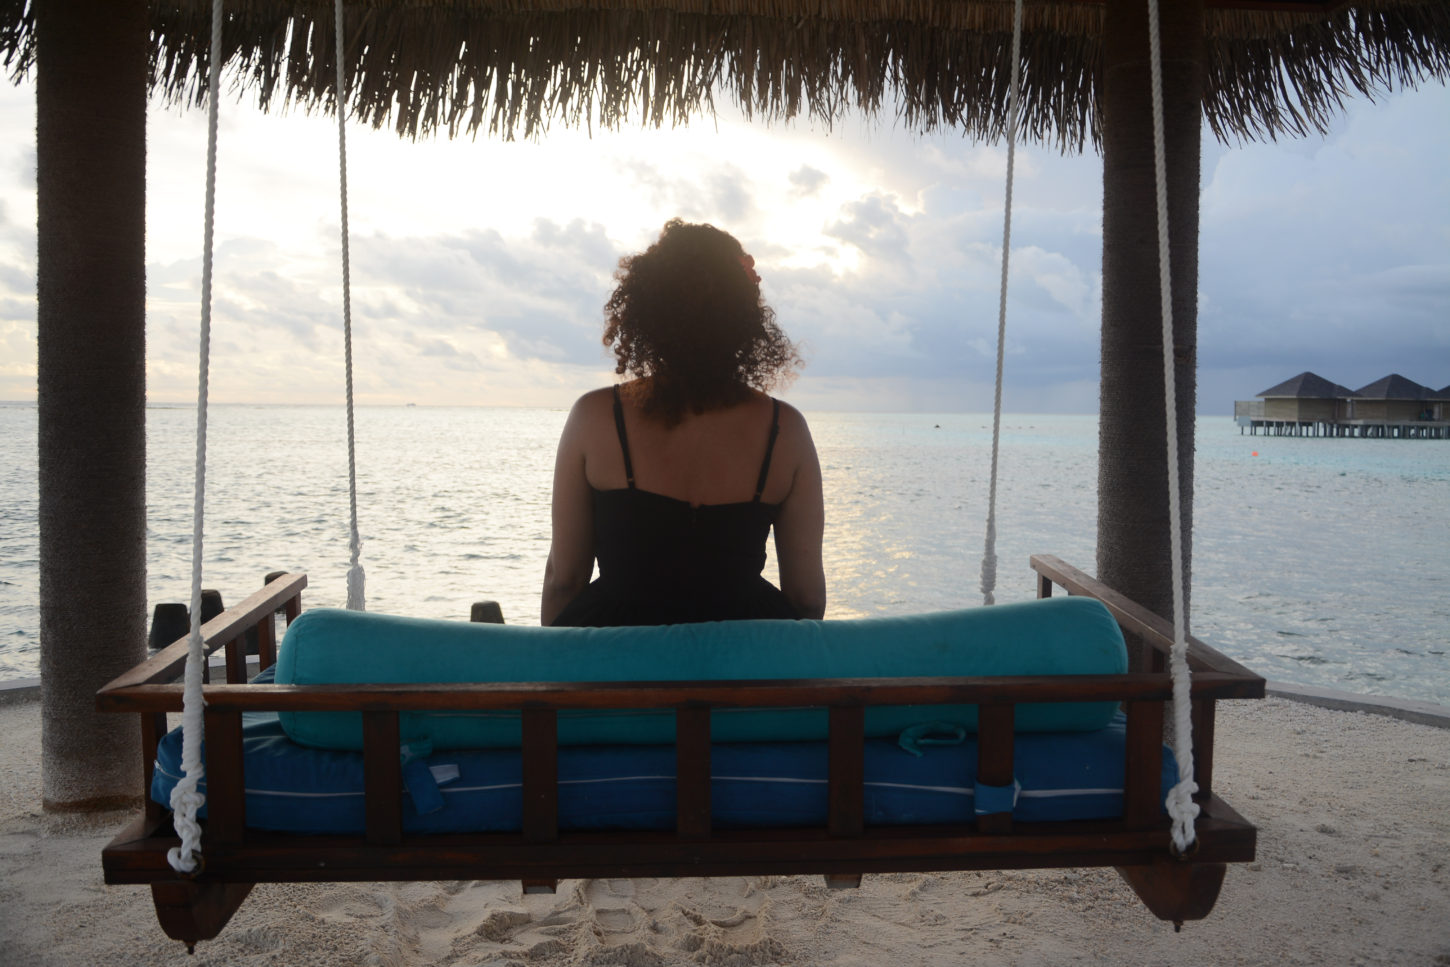 Maldives state of mind - simply surreal